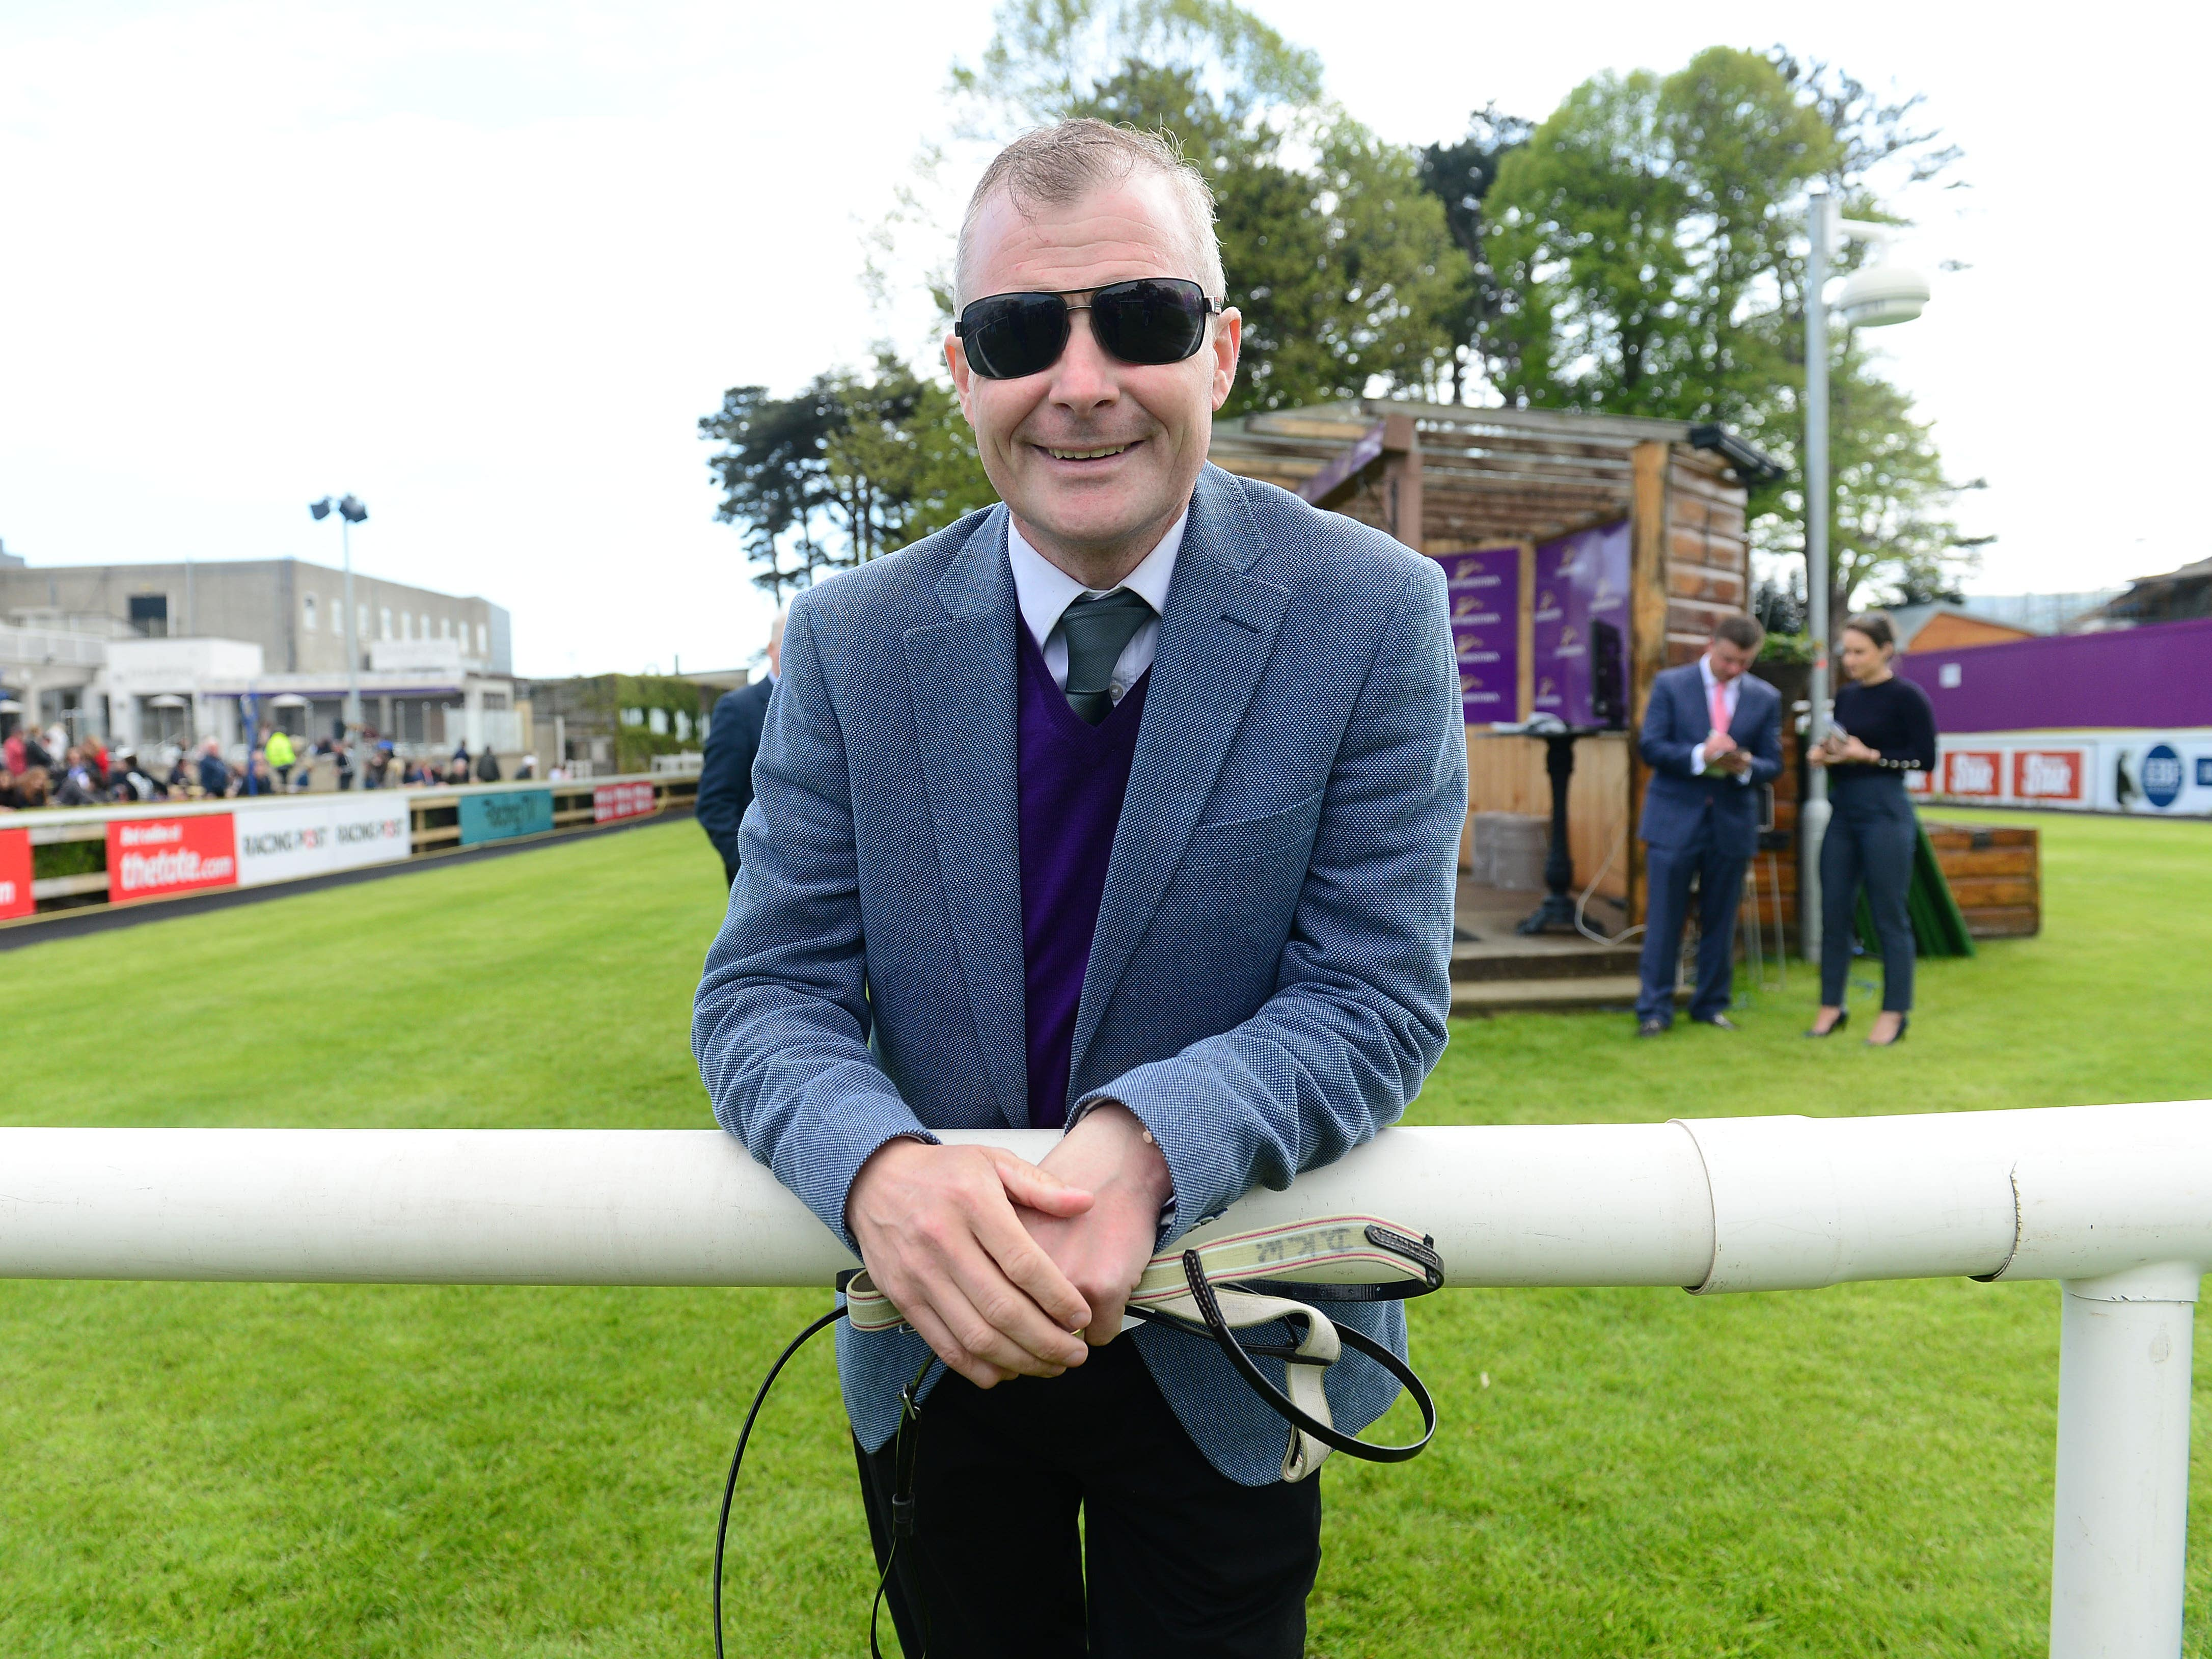 Pat Smullen will ride in a charity race at the Curragh in September (PA)